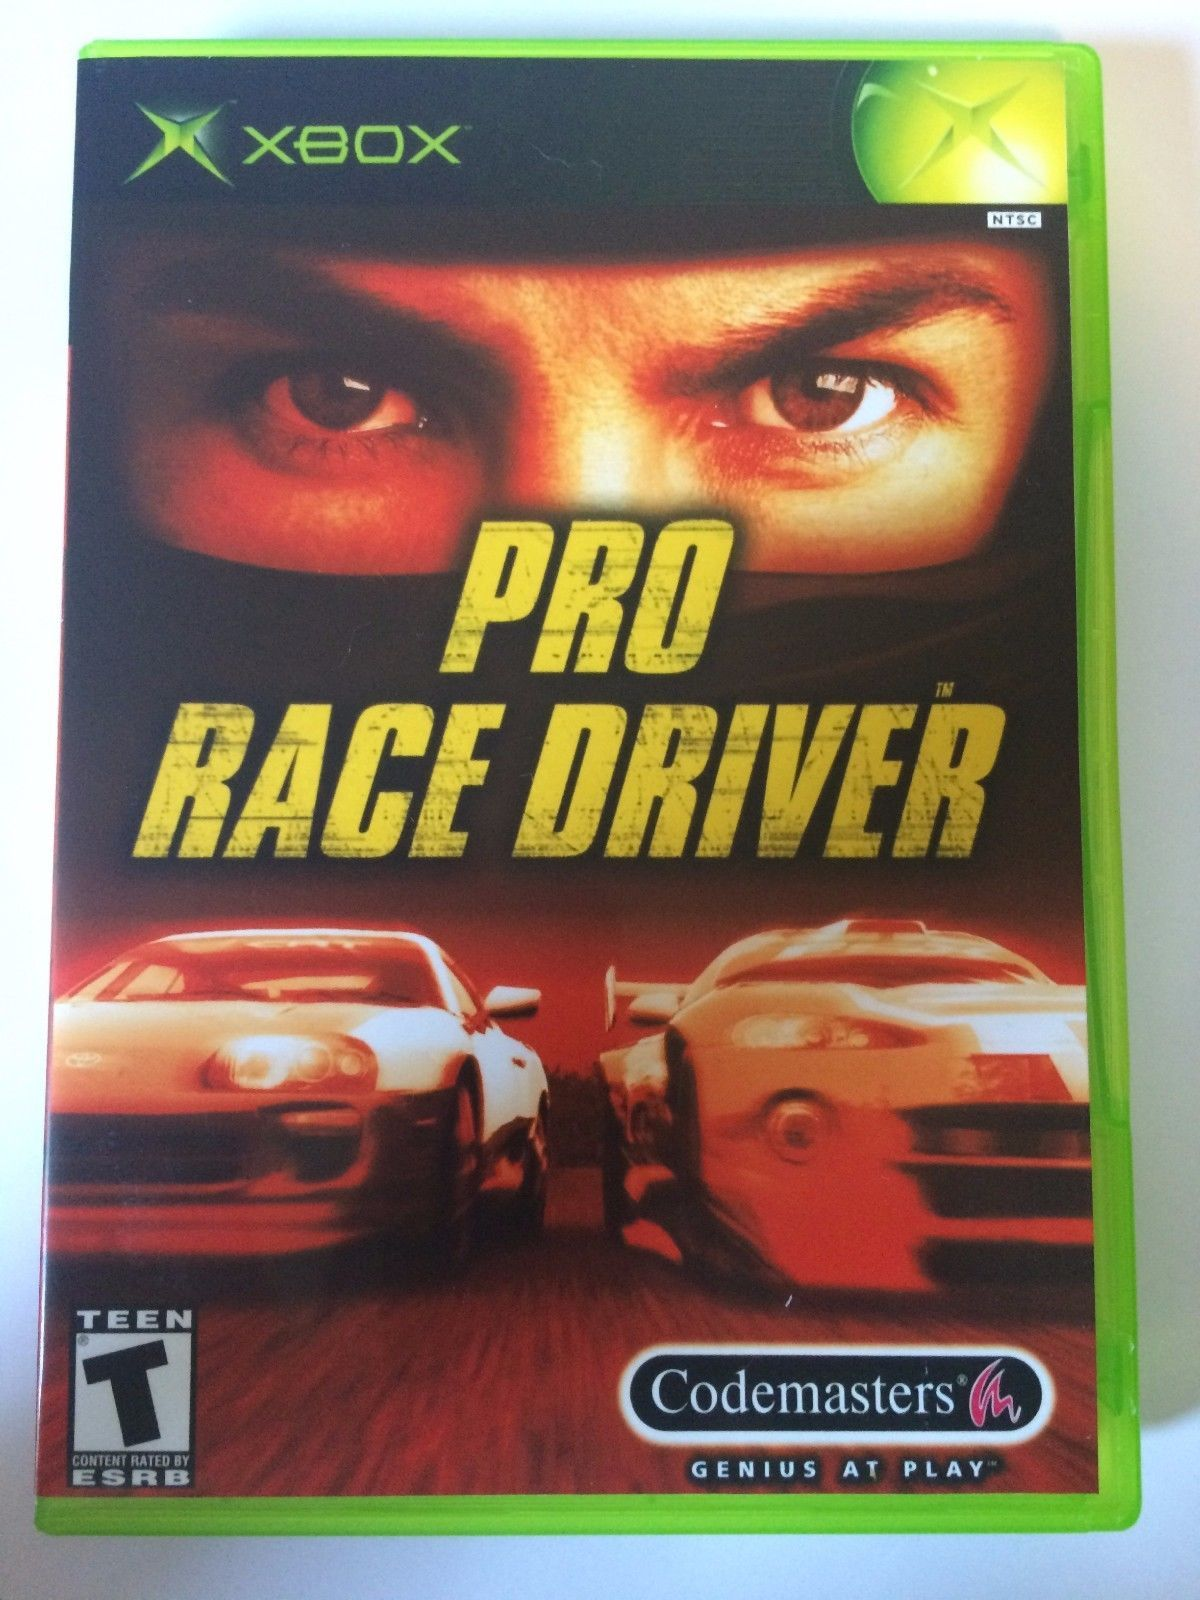 Pro Race Driver - Xbox 360 - Replacement Case - No Game